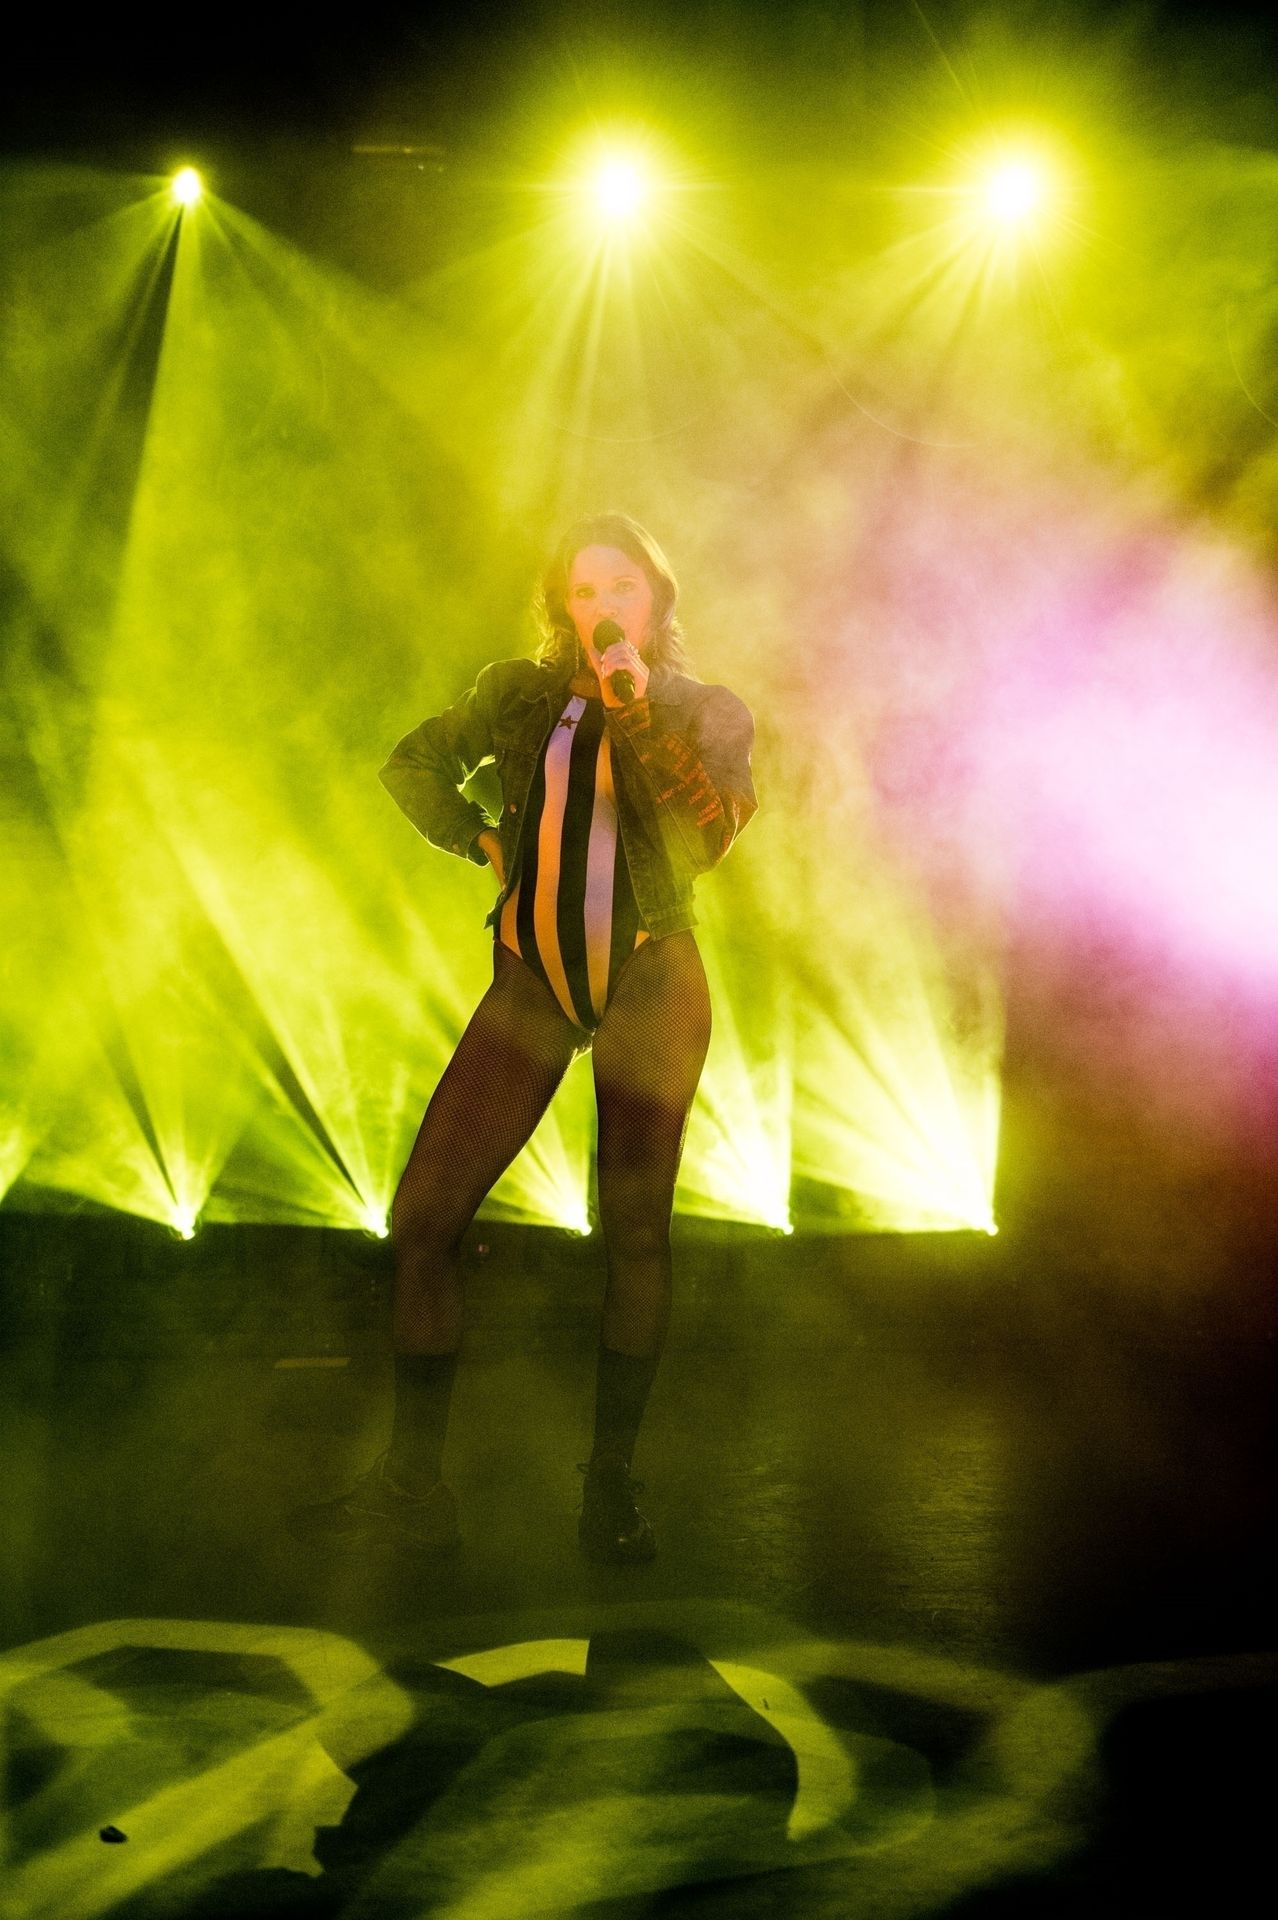 Tove Lo Is In Concert Performing Live At O2 Forum Kentish Town In London 0061